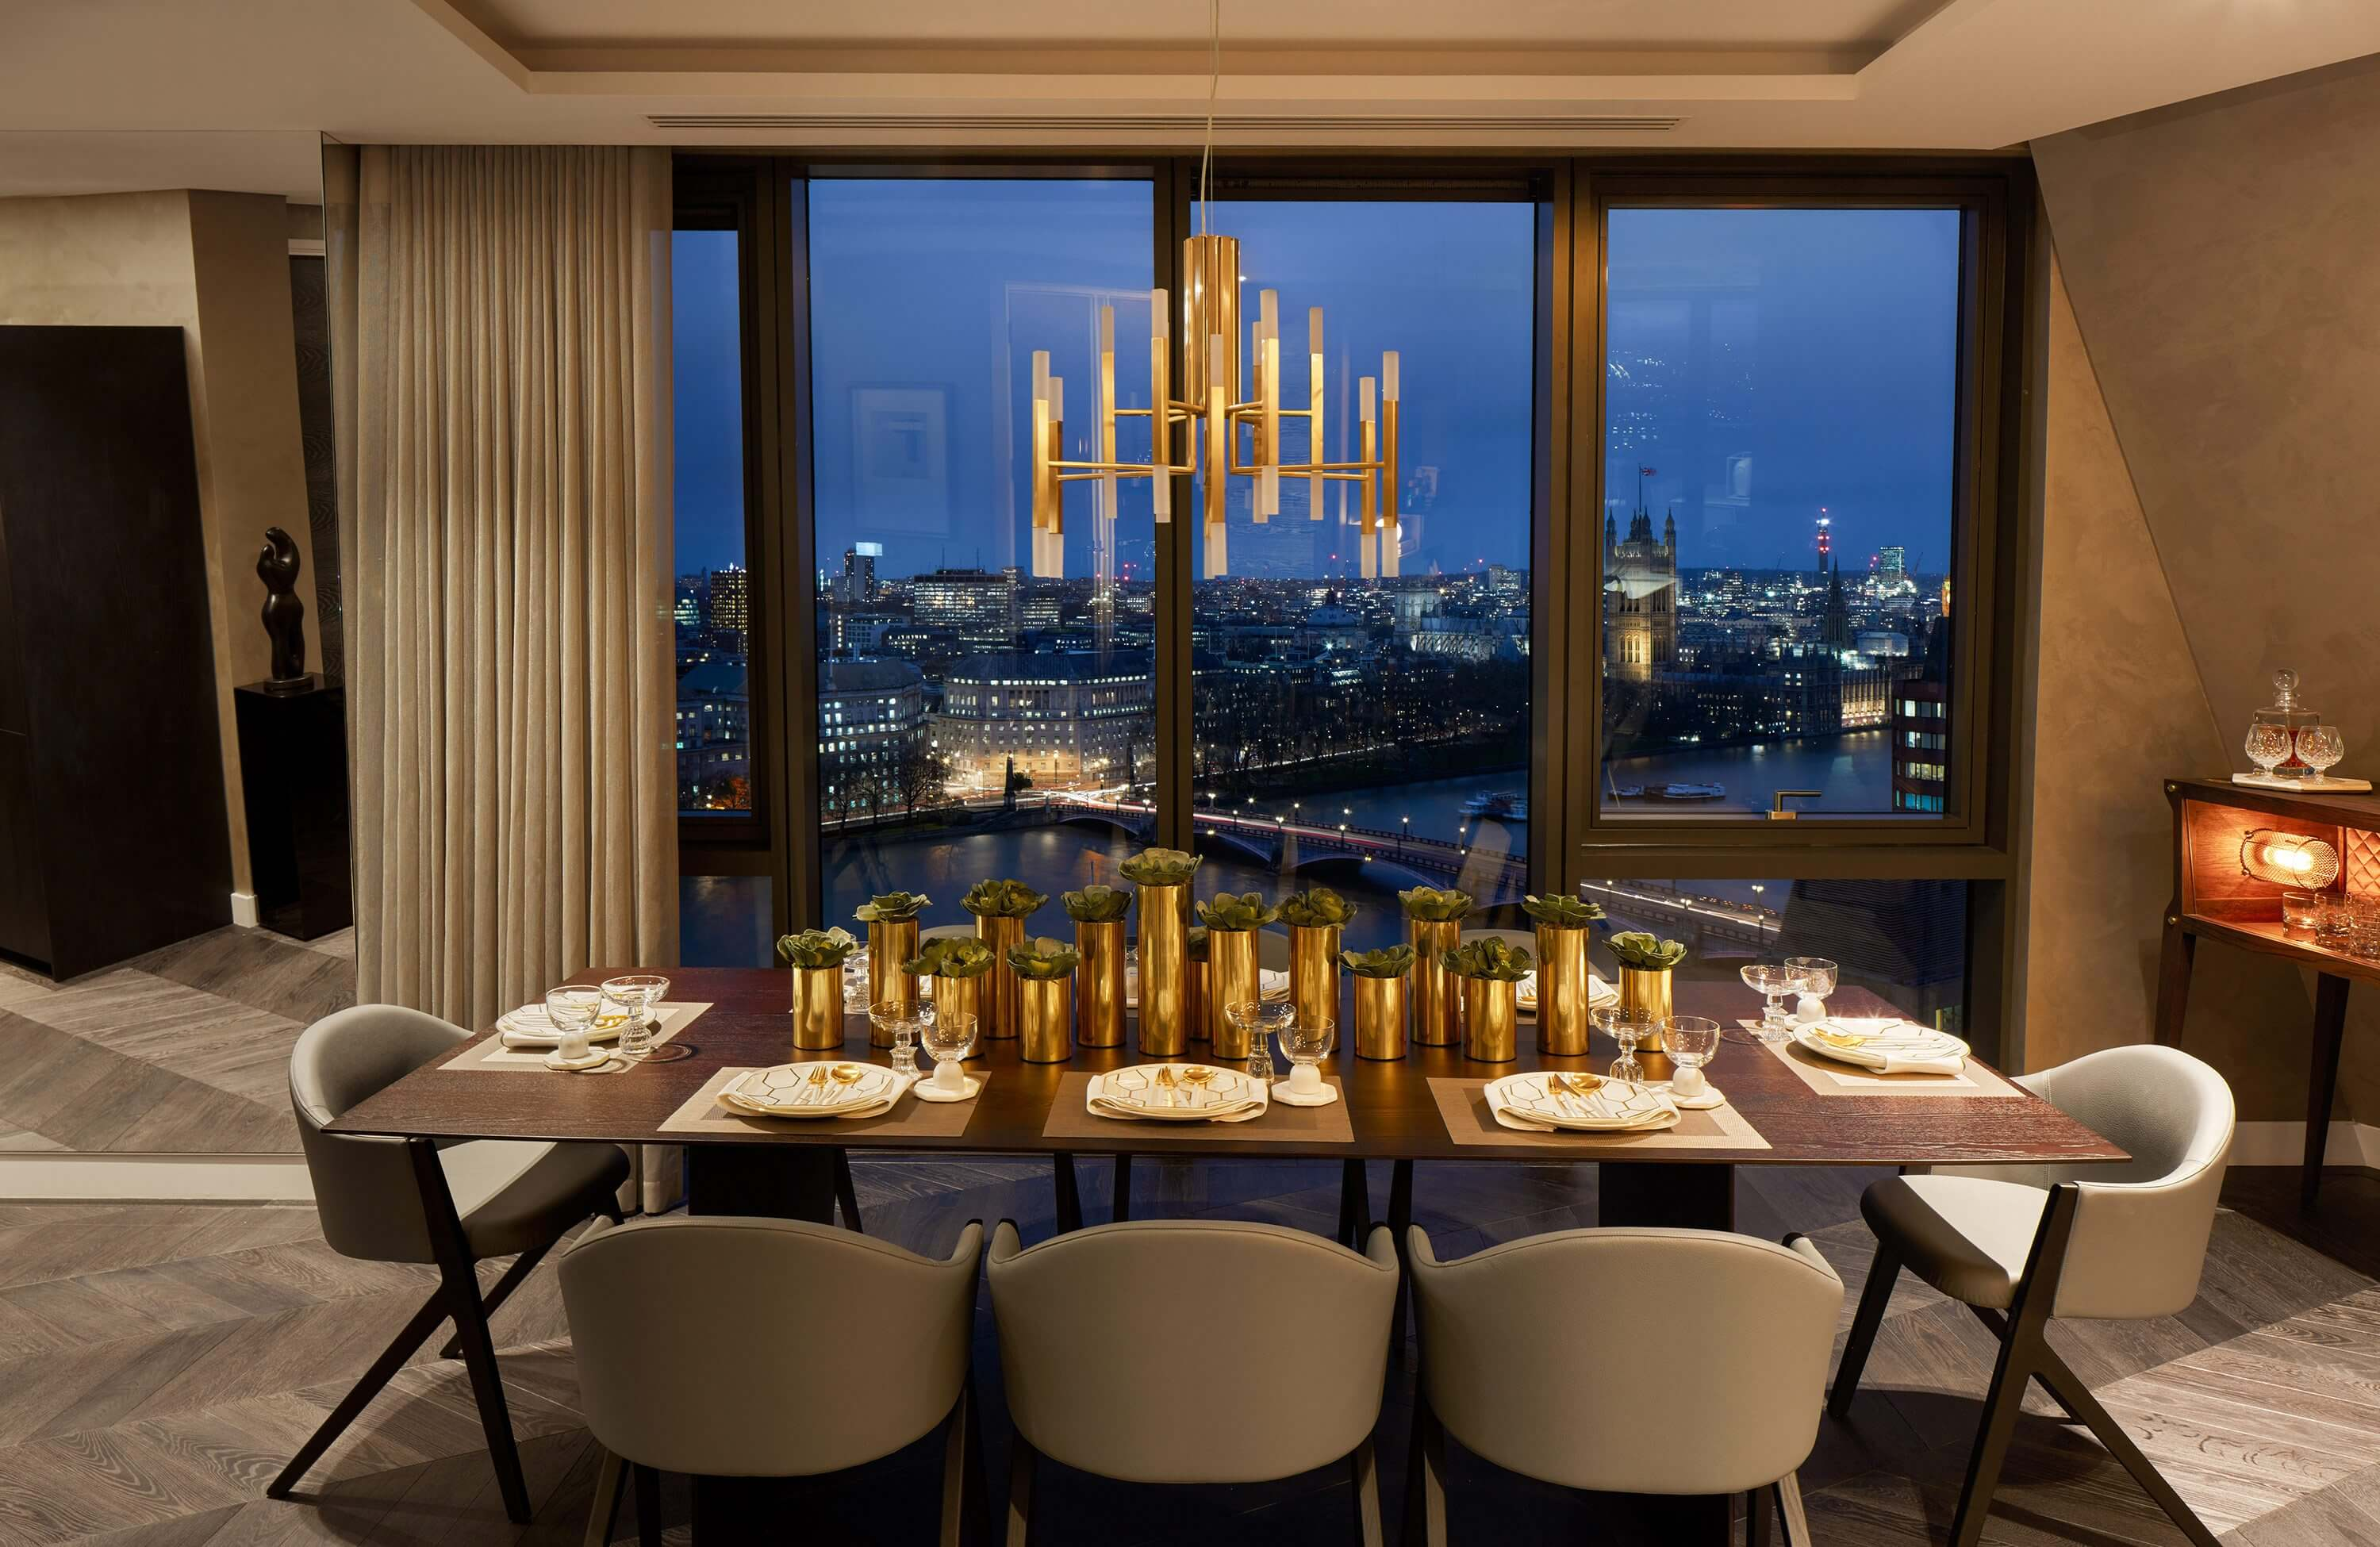 Honky Interior Design Parliament House London Dining Room2